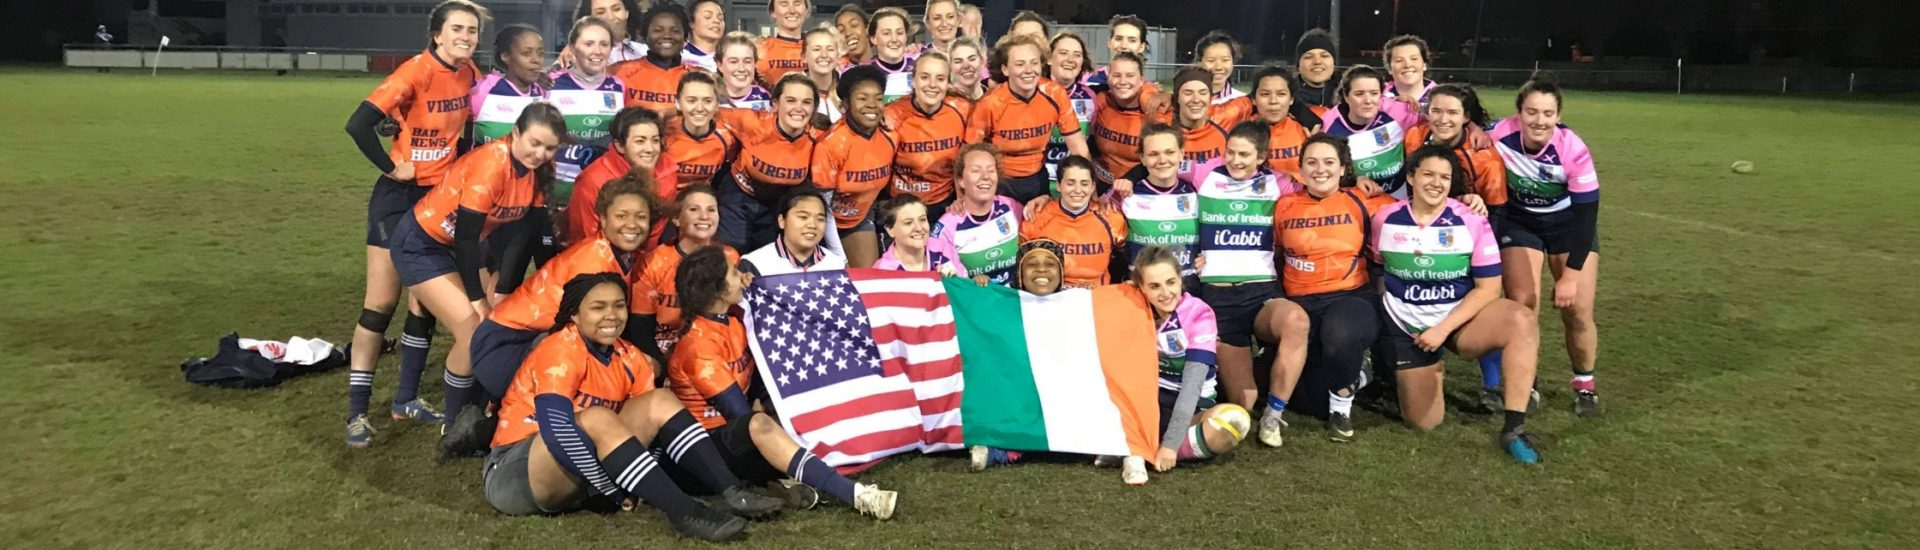 Virginia University WRFC Rugby Tour To Ireland 2019 - Irish Rugby Tours, Rugby Tours To Ireland, Women's Rugby Tours